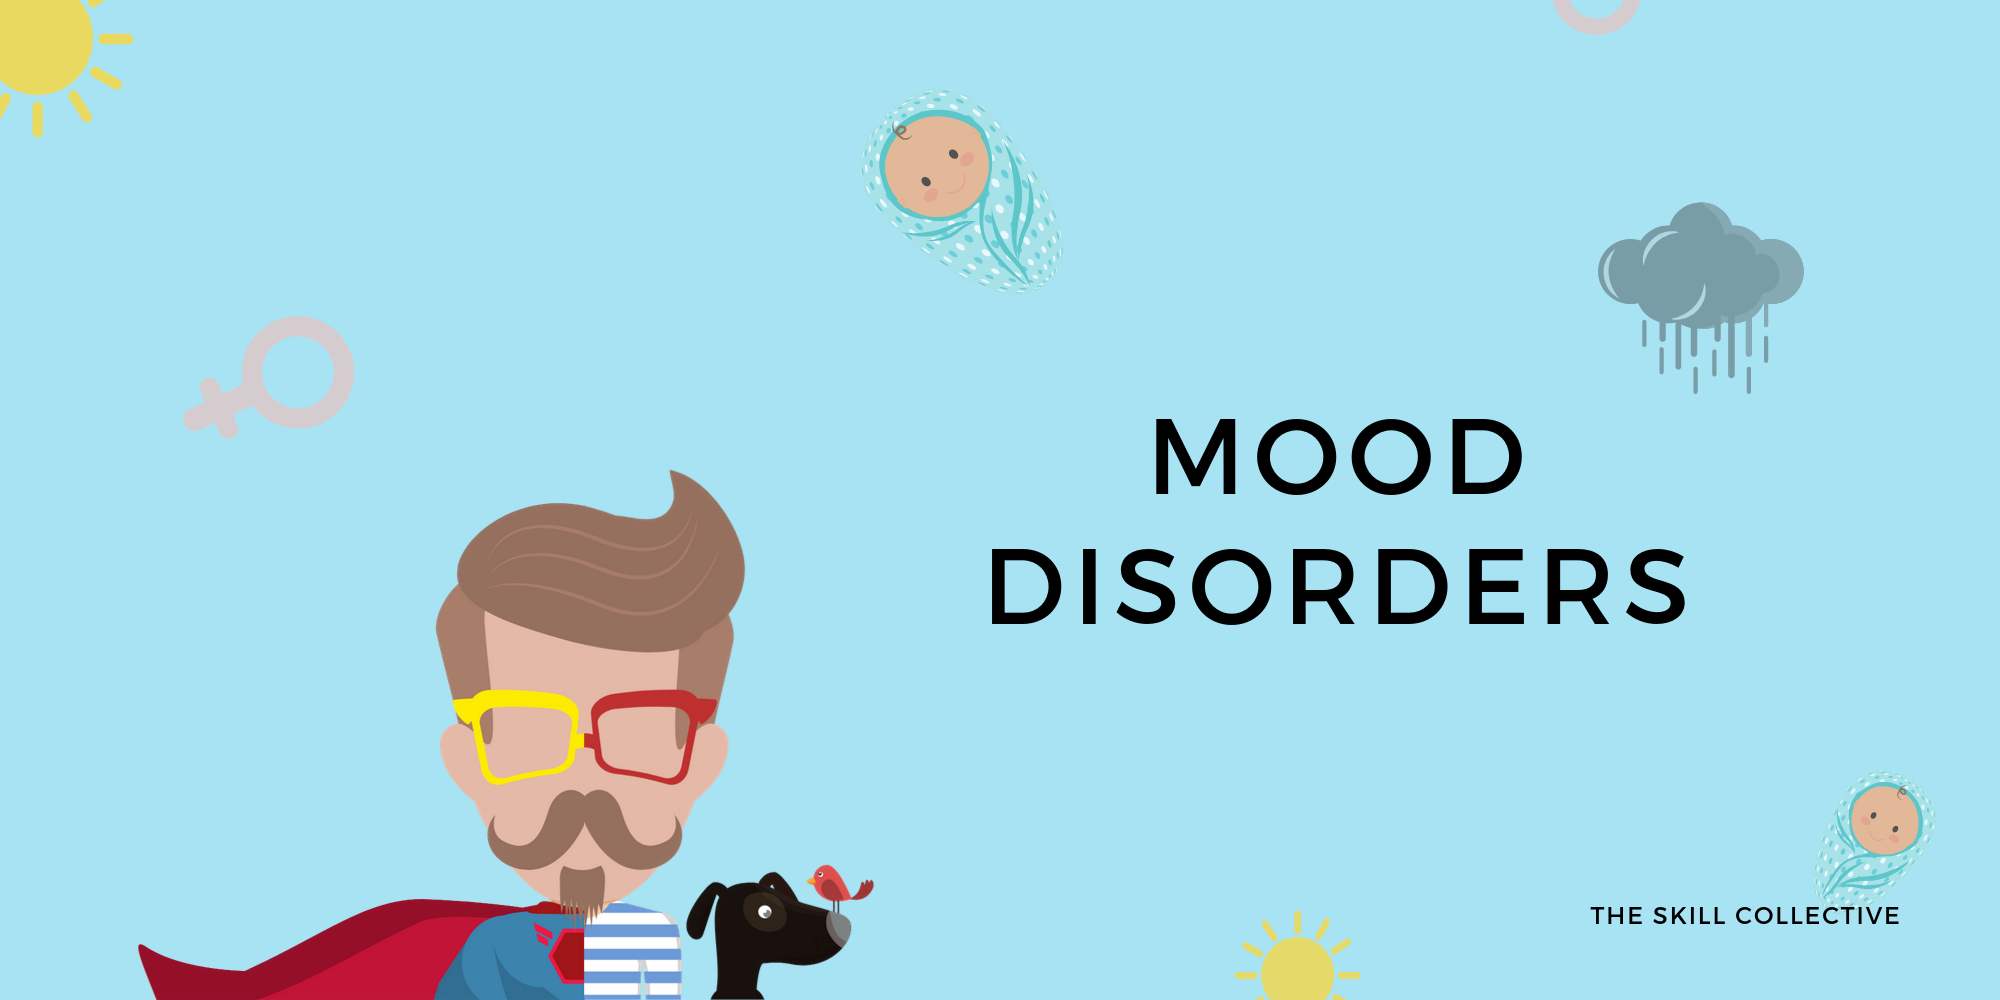 Depression and mood disorders symptoms and treatment by The Skill Collective in Subiaco Perth